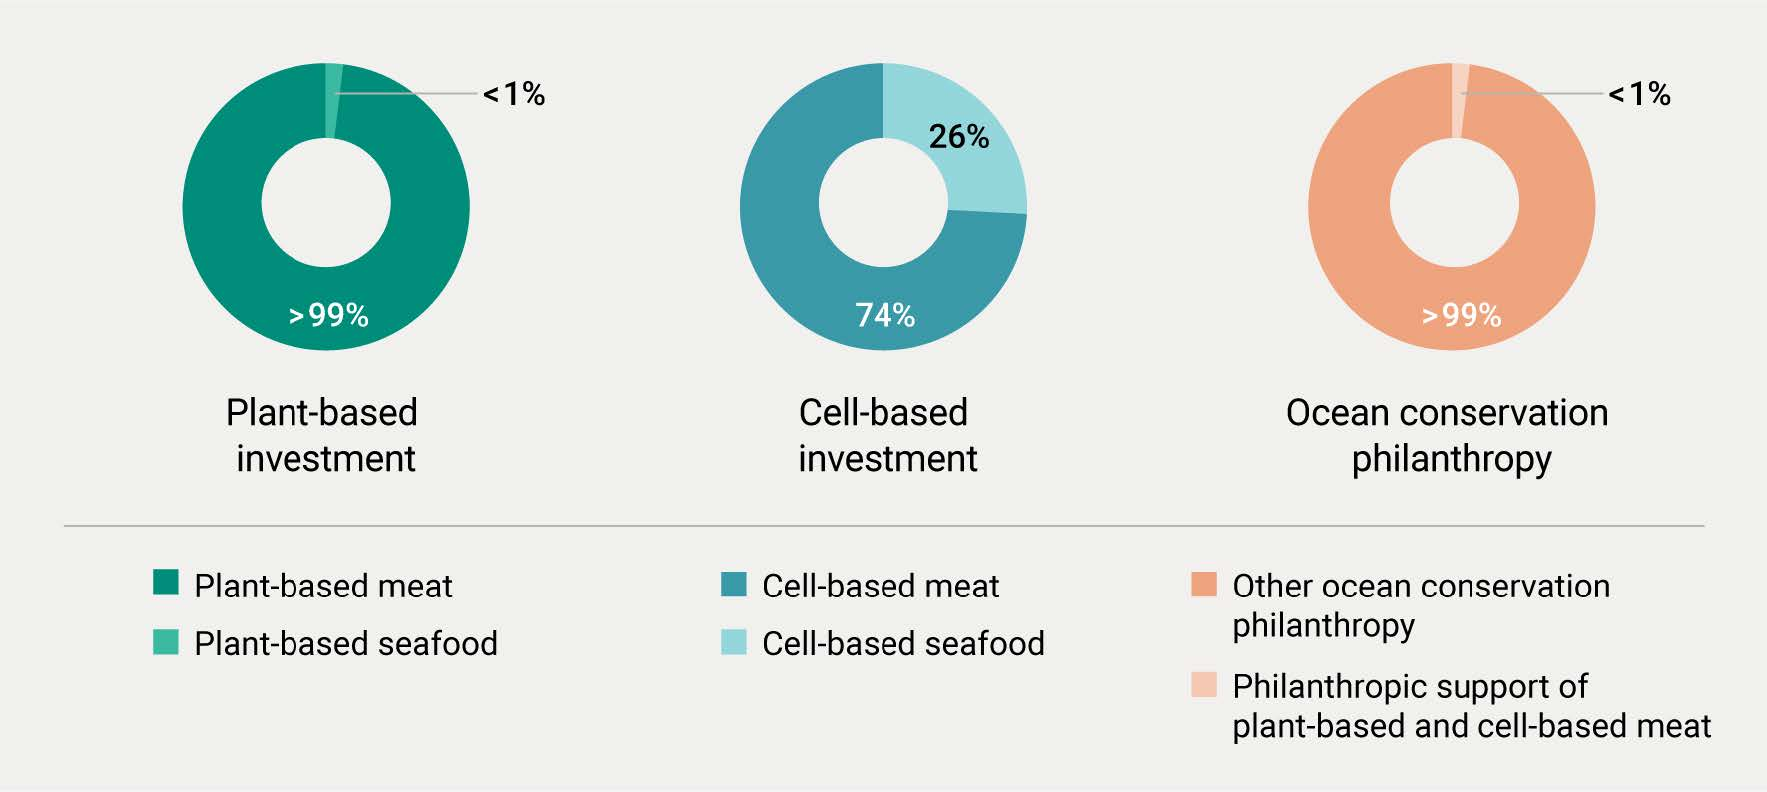 Investment and philanthropic funding for plant-based and cultivated seafood is strikingly neglected.